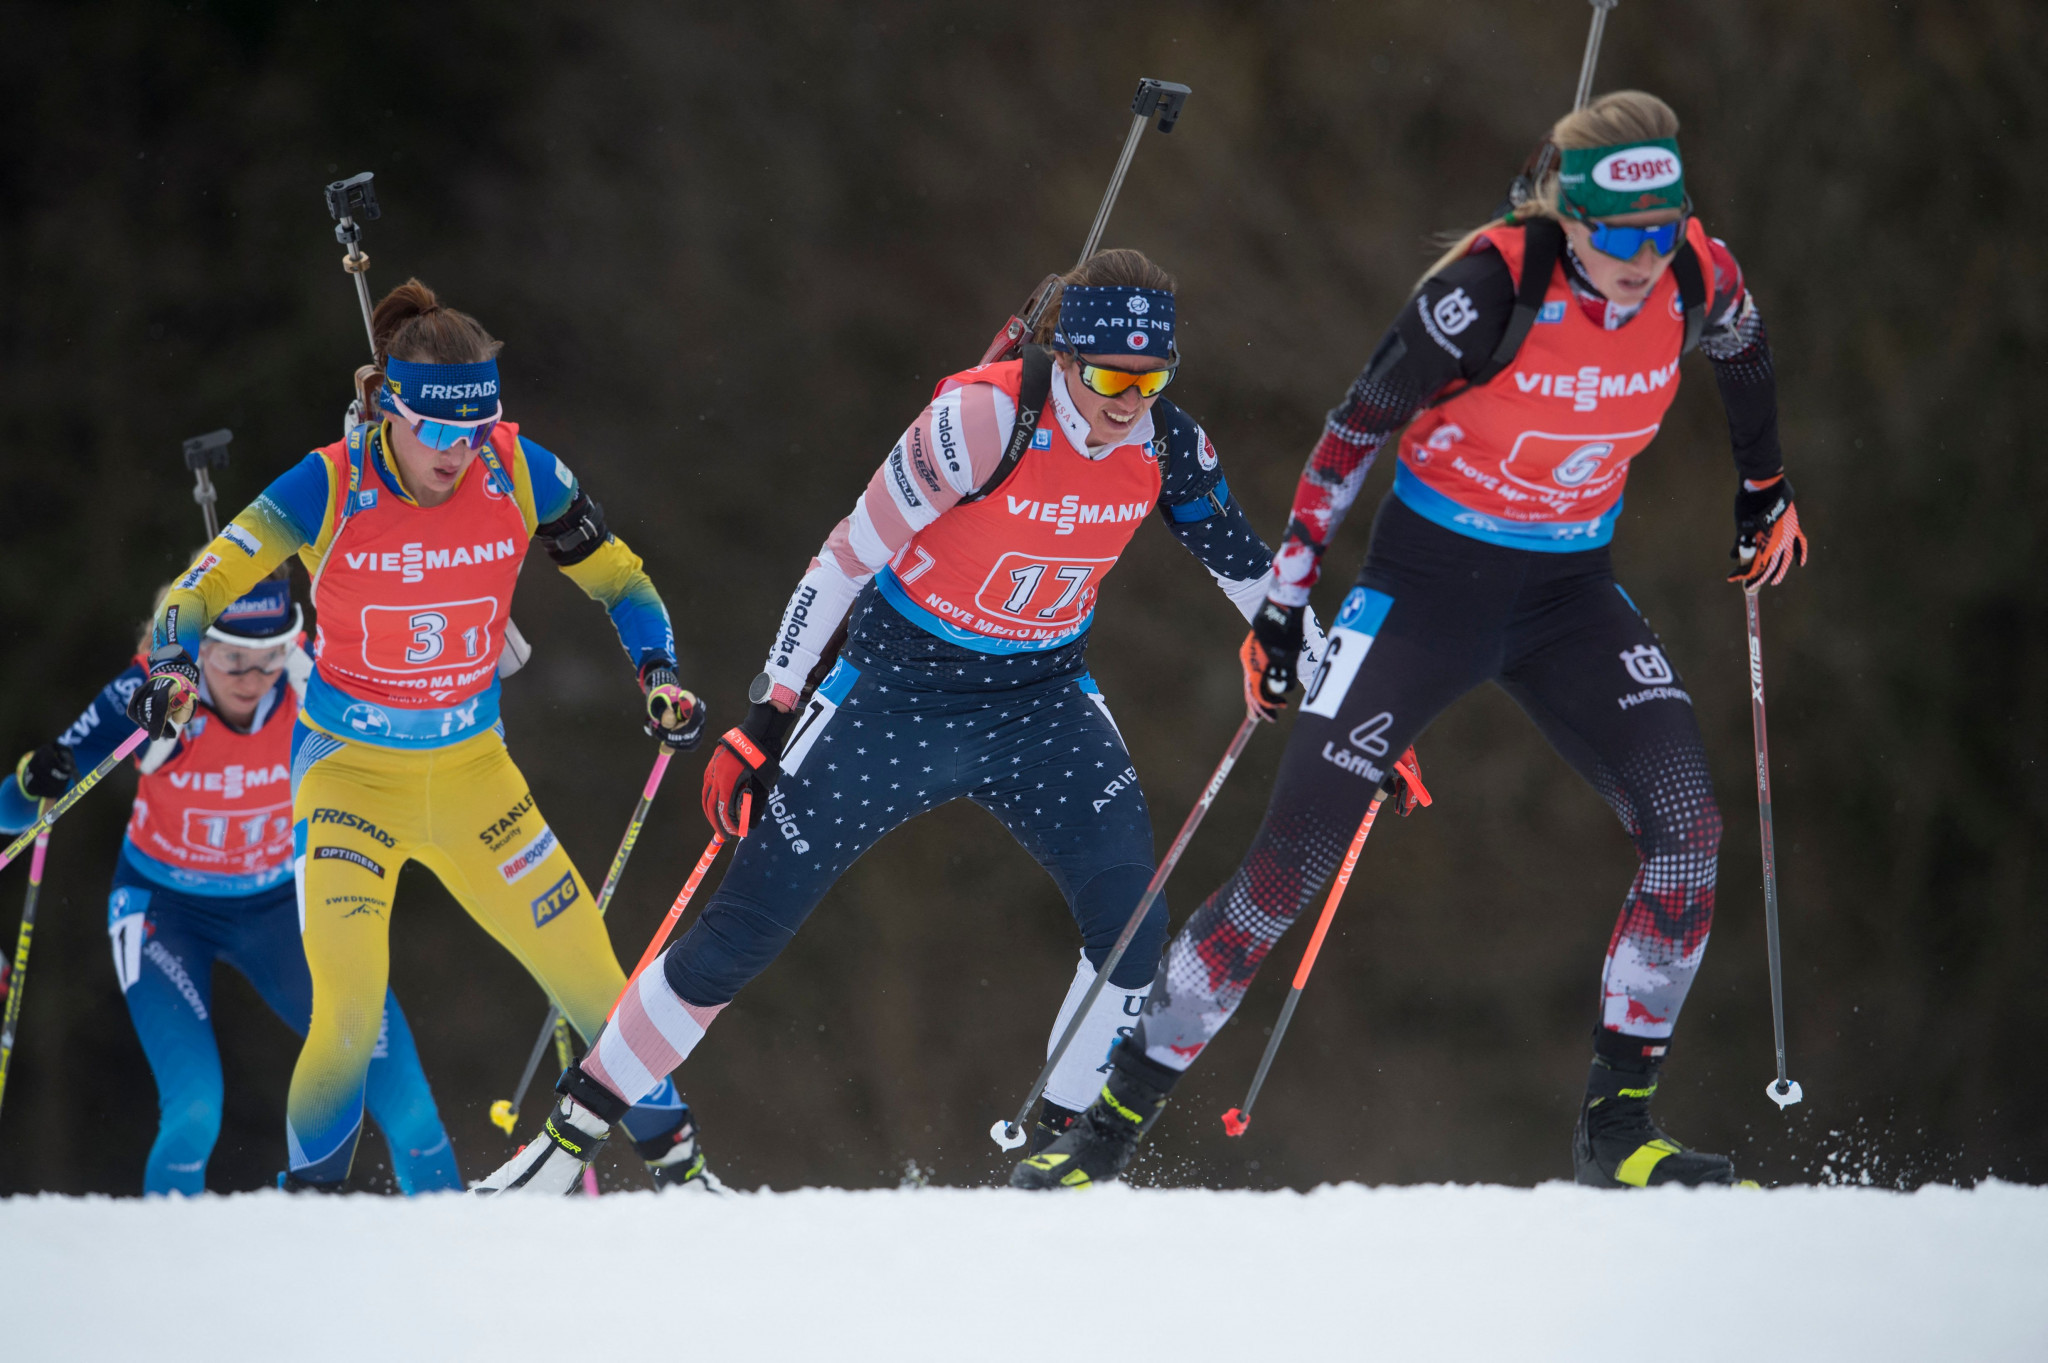 Biathlon is one of four sports that SCATTA will provide attire for ©Getty Images